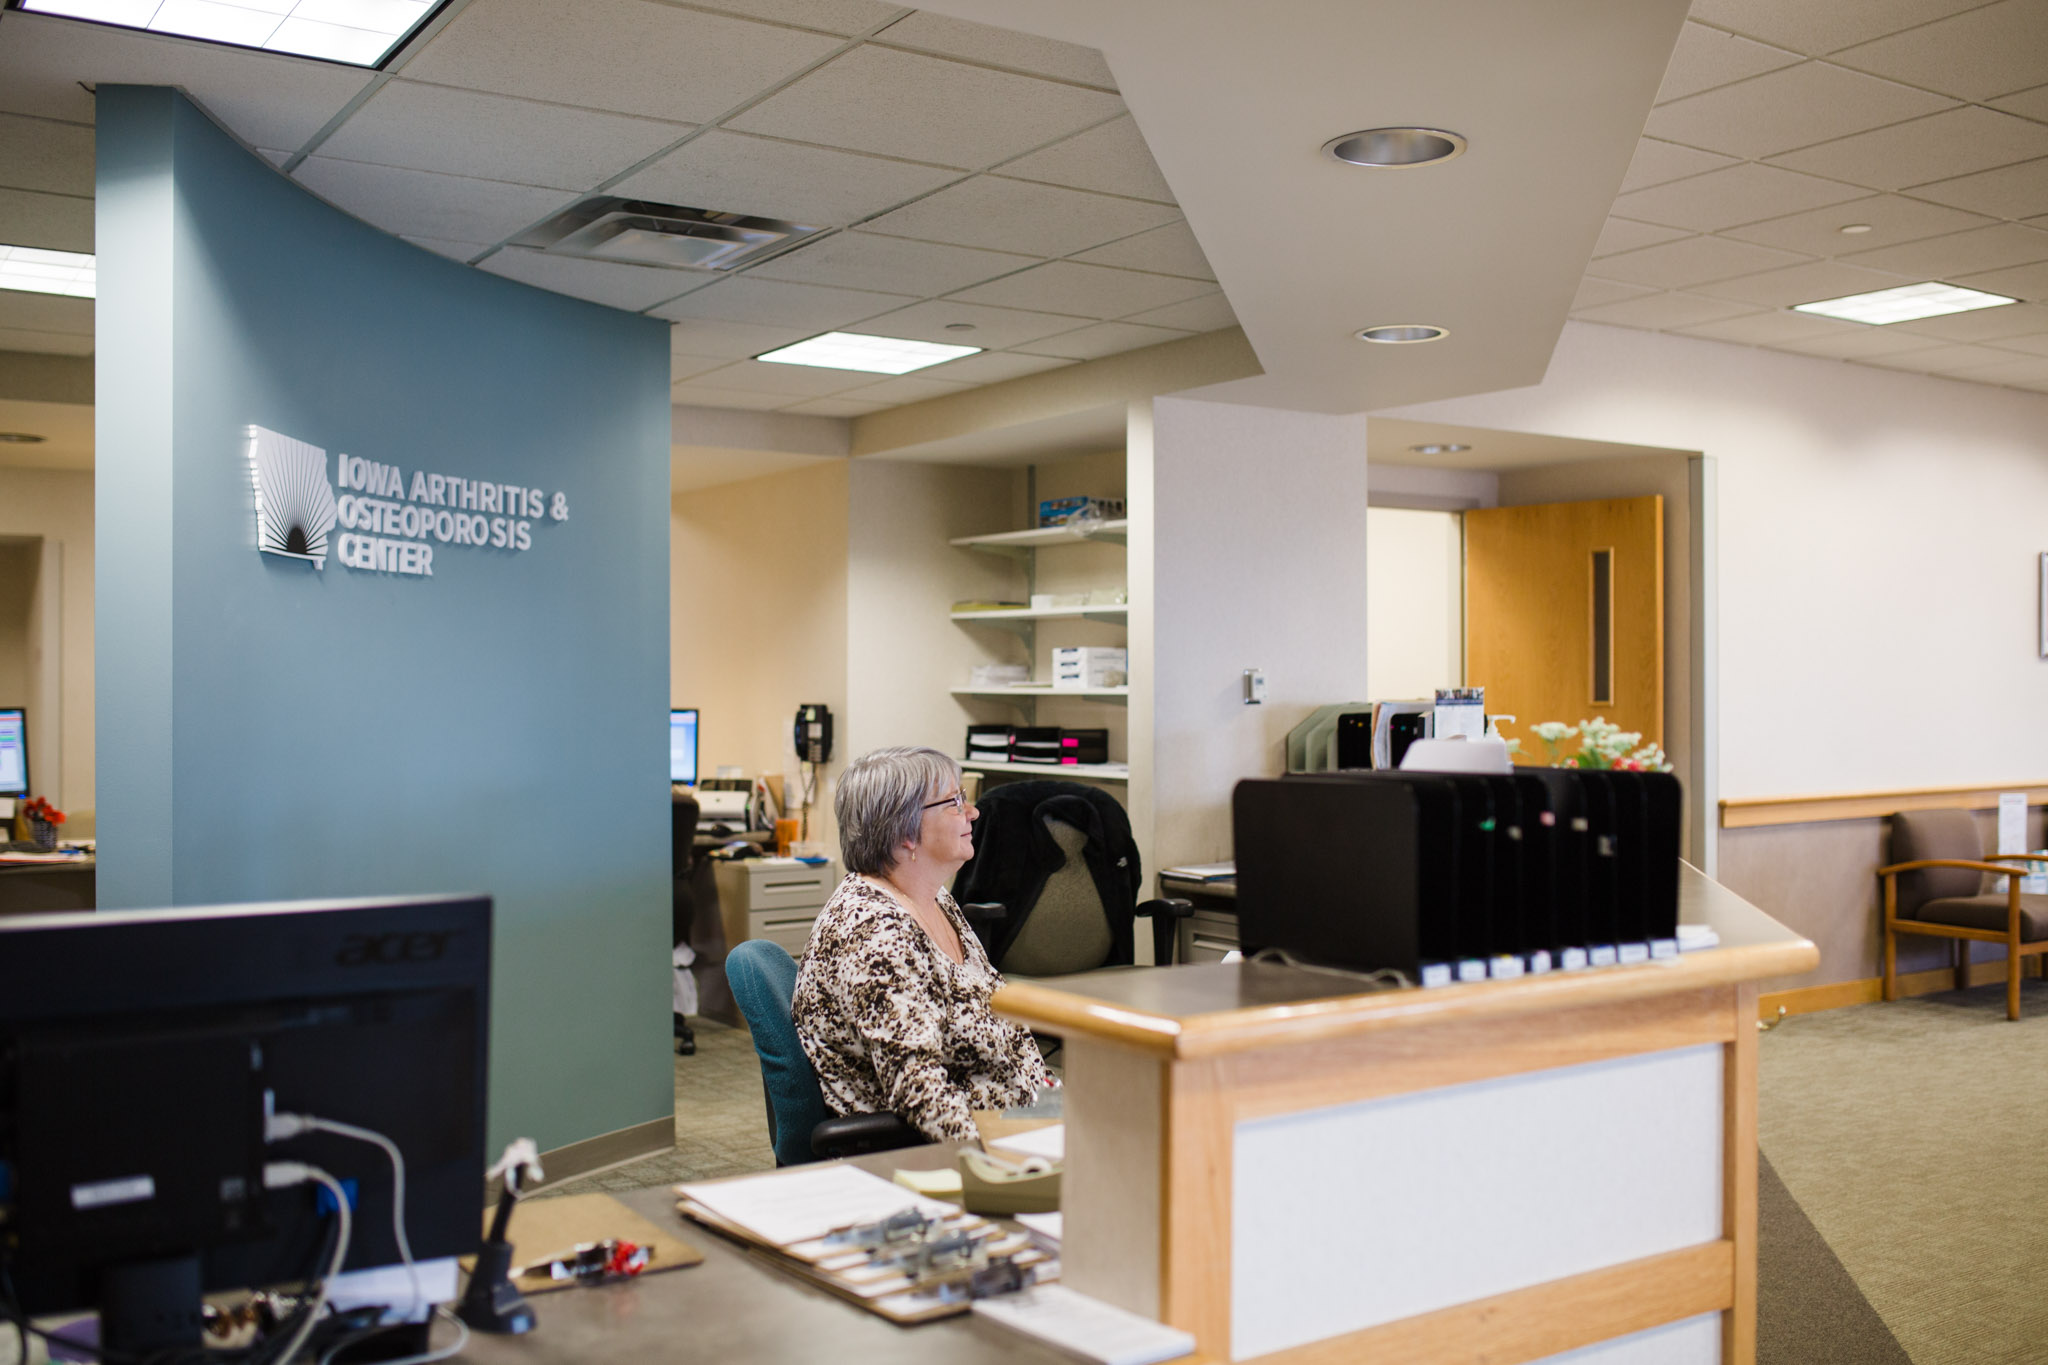 25+ Iowa arthritis and osteoporosis center fax number ideas